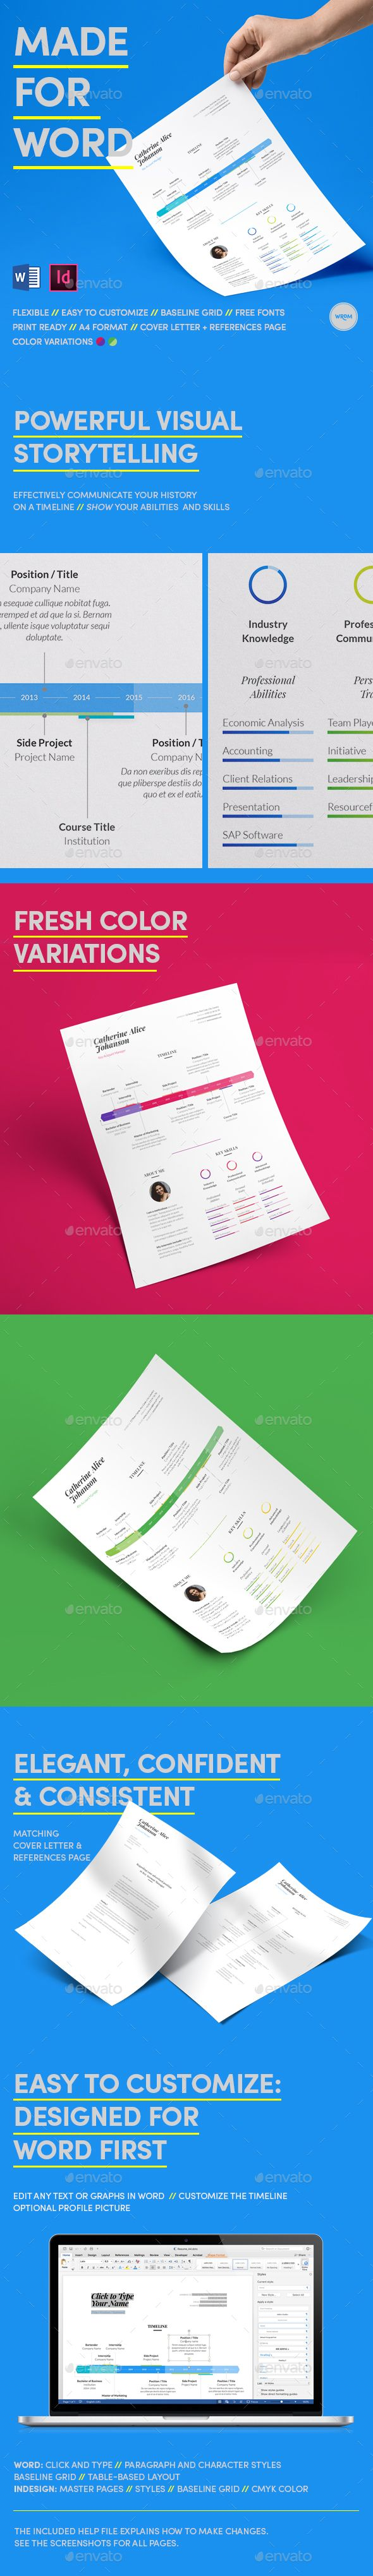 Infographic Resume Made for Word — InDesign INDD #references #blue • Available here → https://graphicriver.net/item/timeline-resume-made-for-word/19627424?ref=pxcr